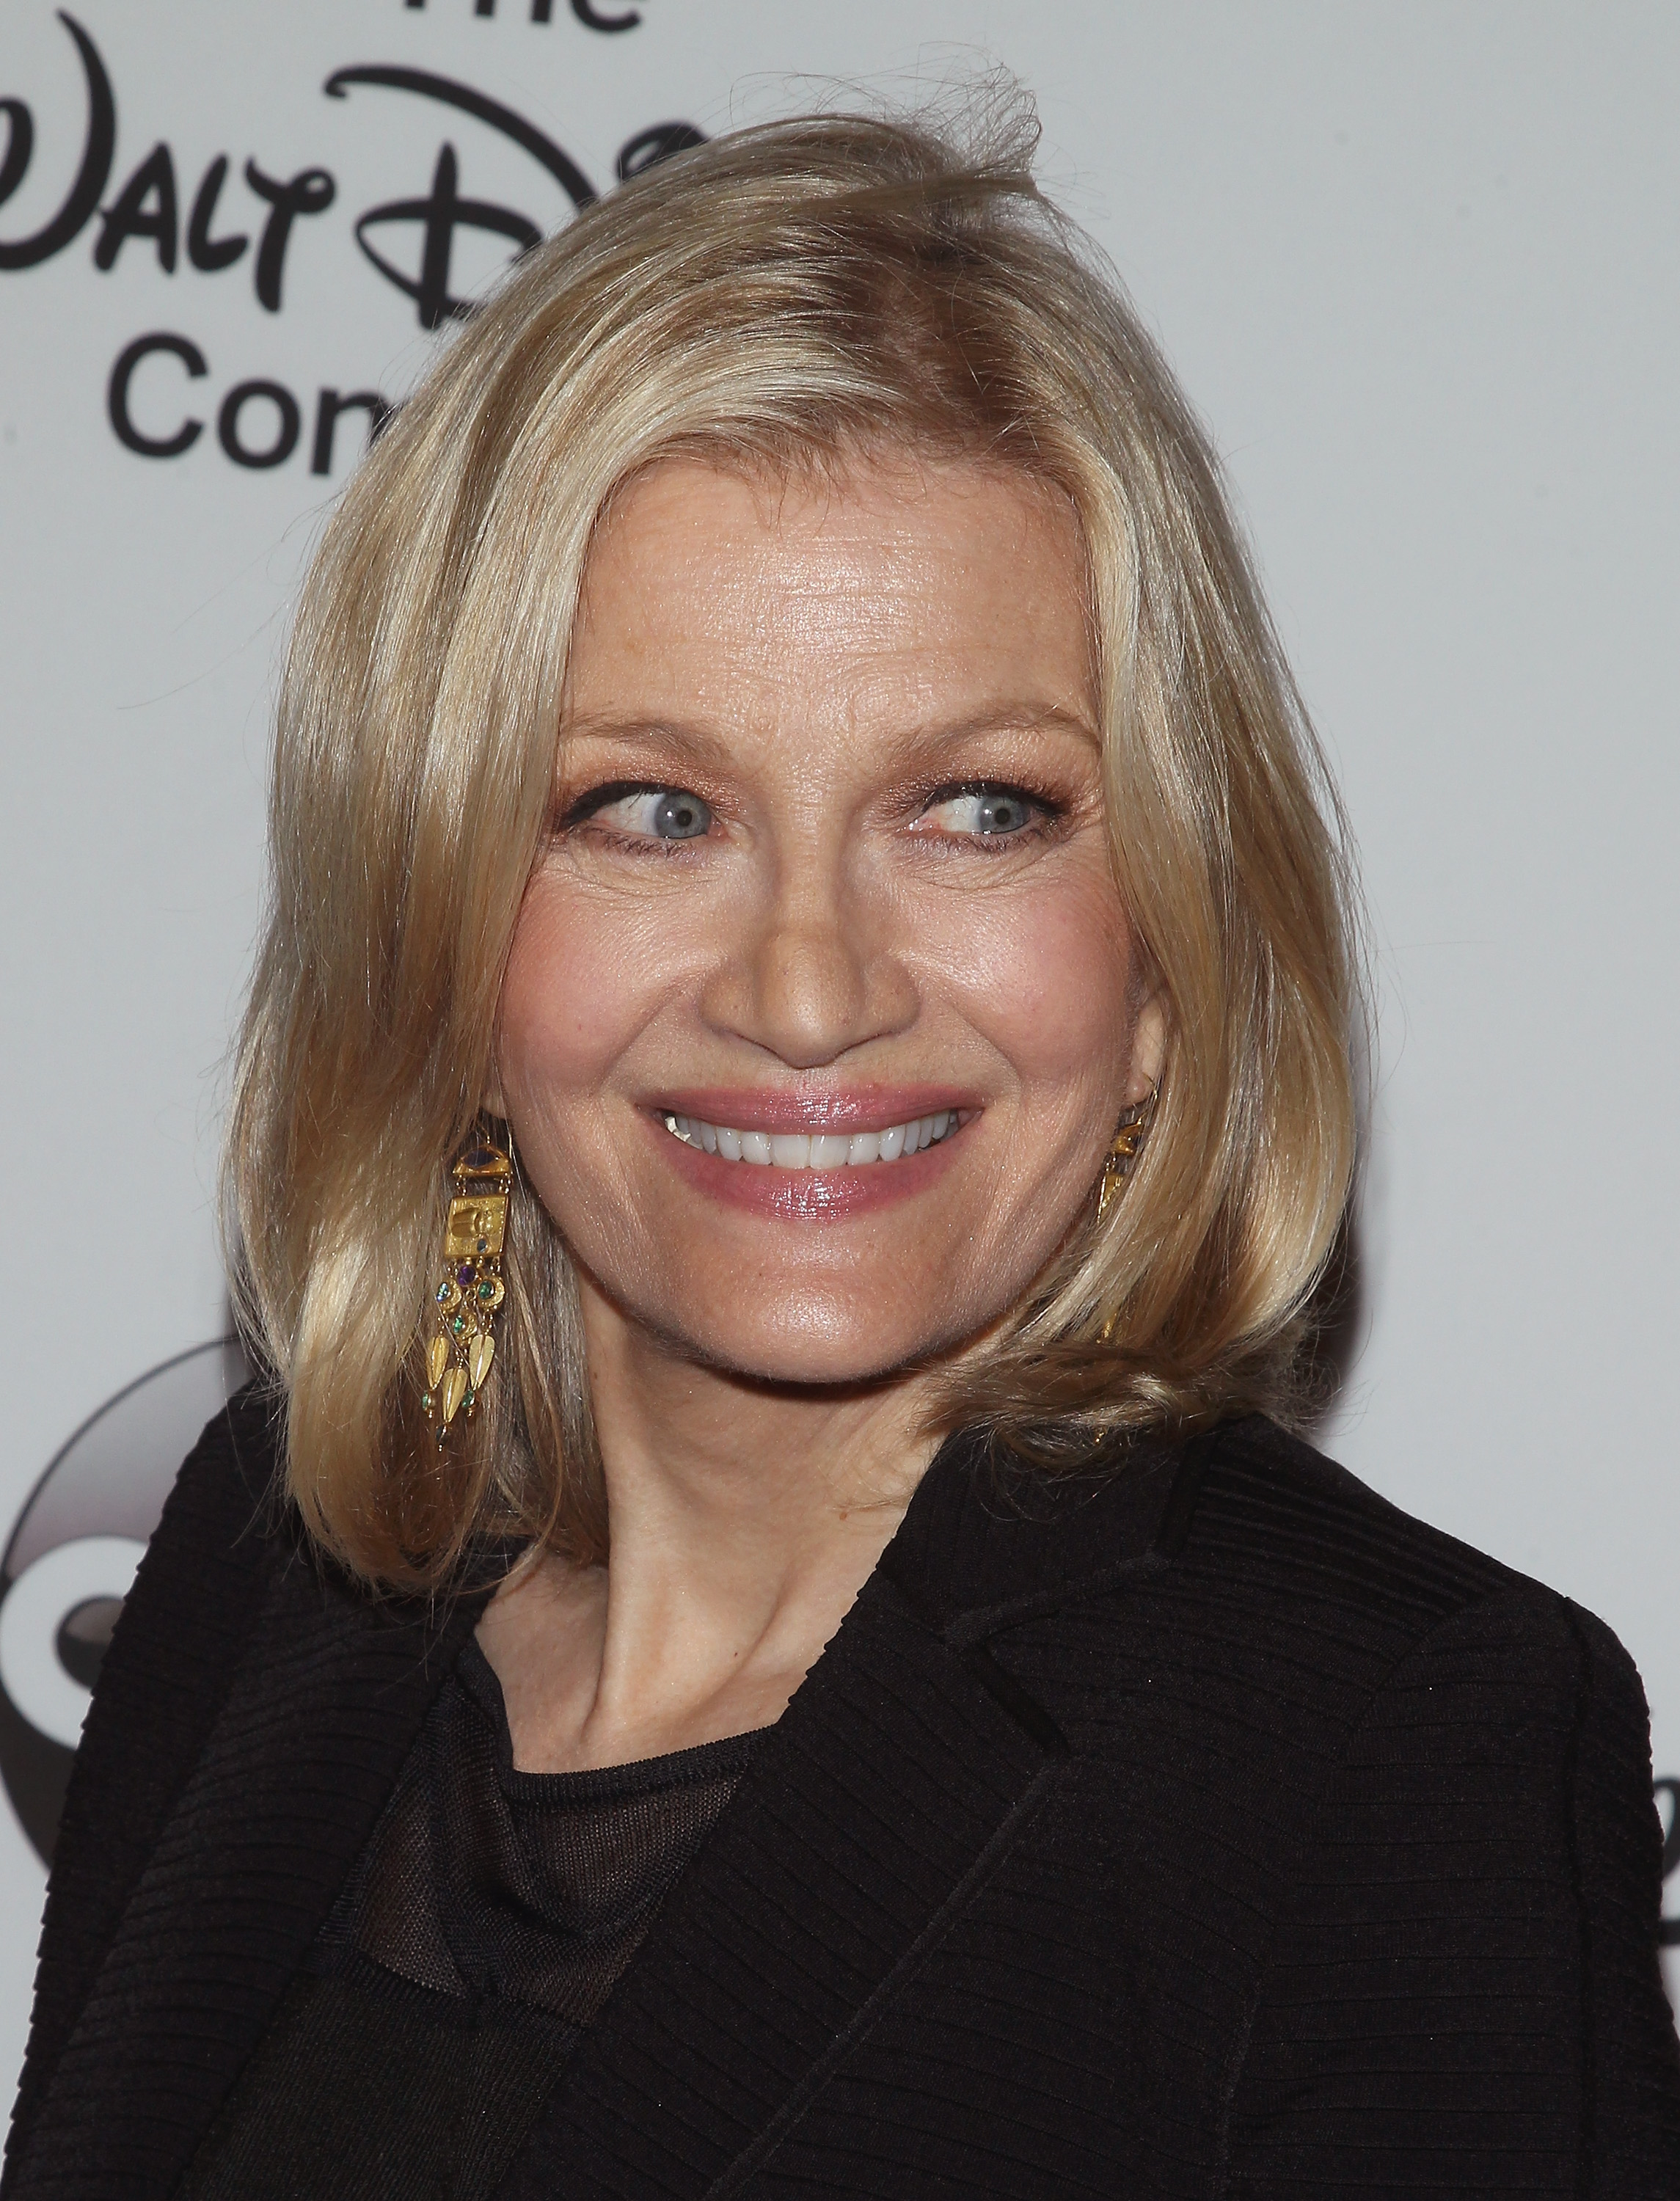 Diane Sawyer  attends A Celebration of Barbara Walters Cocktail Reception Red Carpet at the Four Seasons Restaurant on May 14, 2014 in New York.